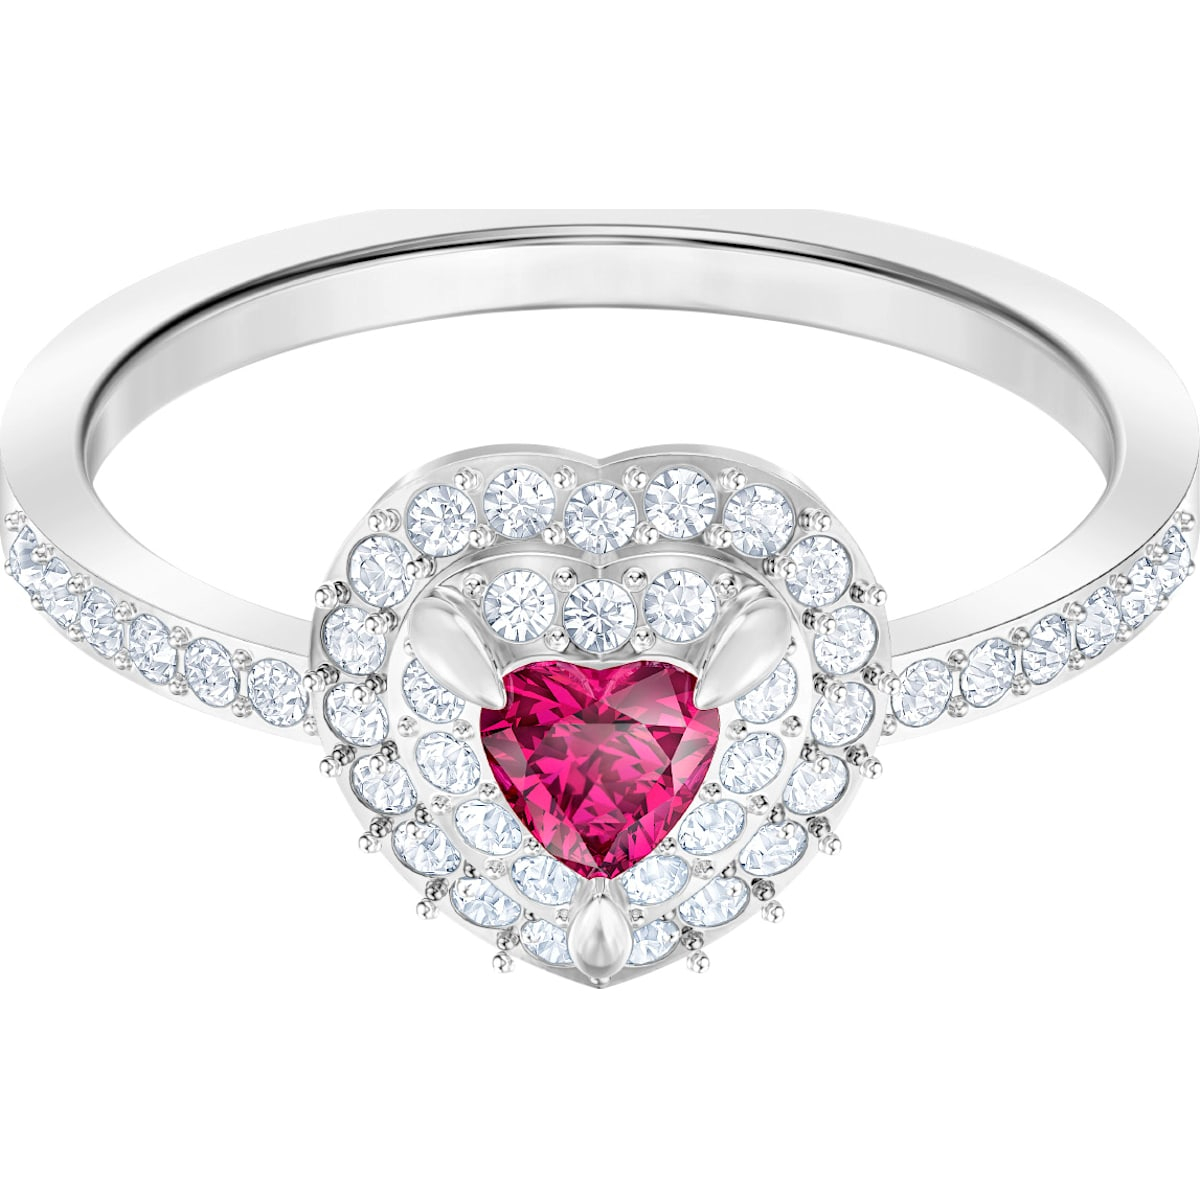 One Ring, Red, Rhodium Plated Intended For Most Up To Date Sparkling Red Heart Rings (View 9 of 25)